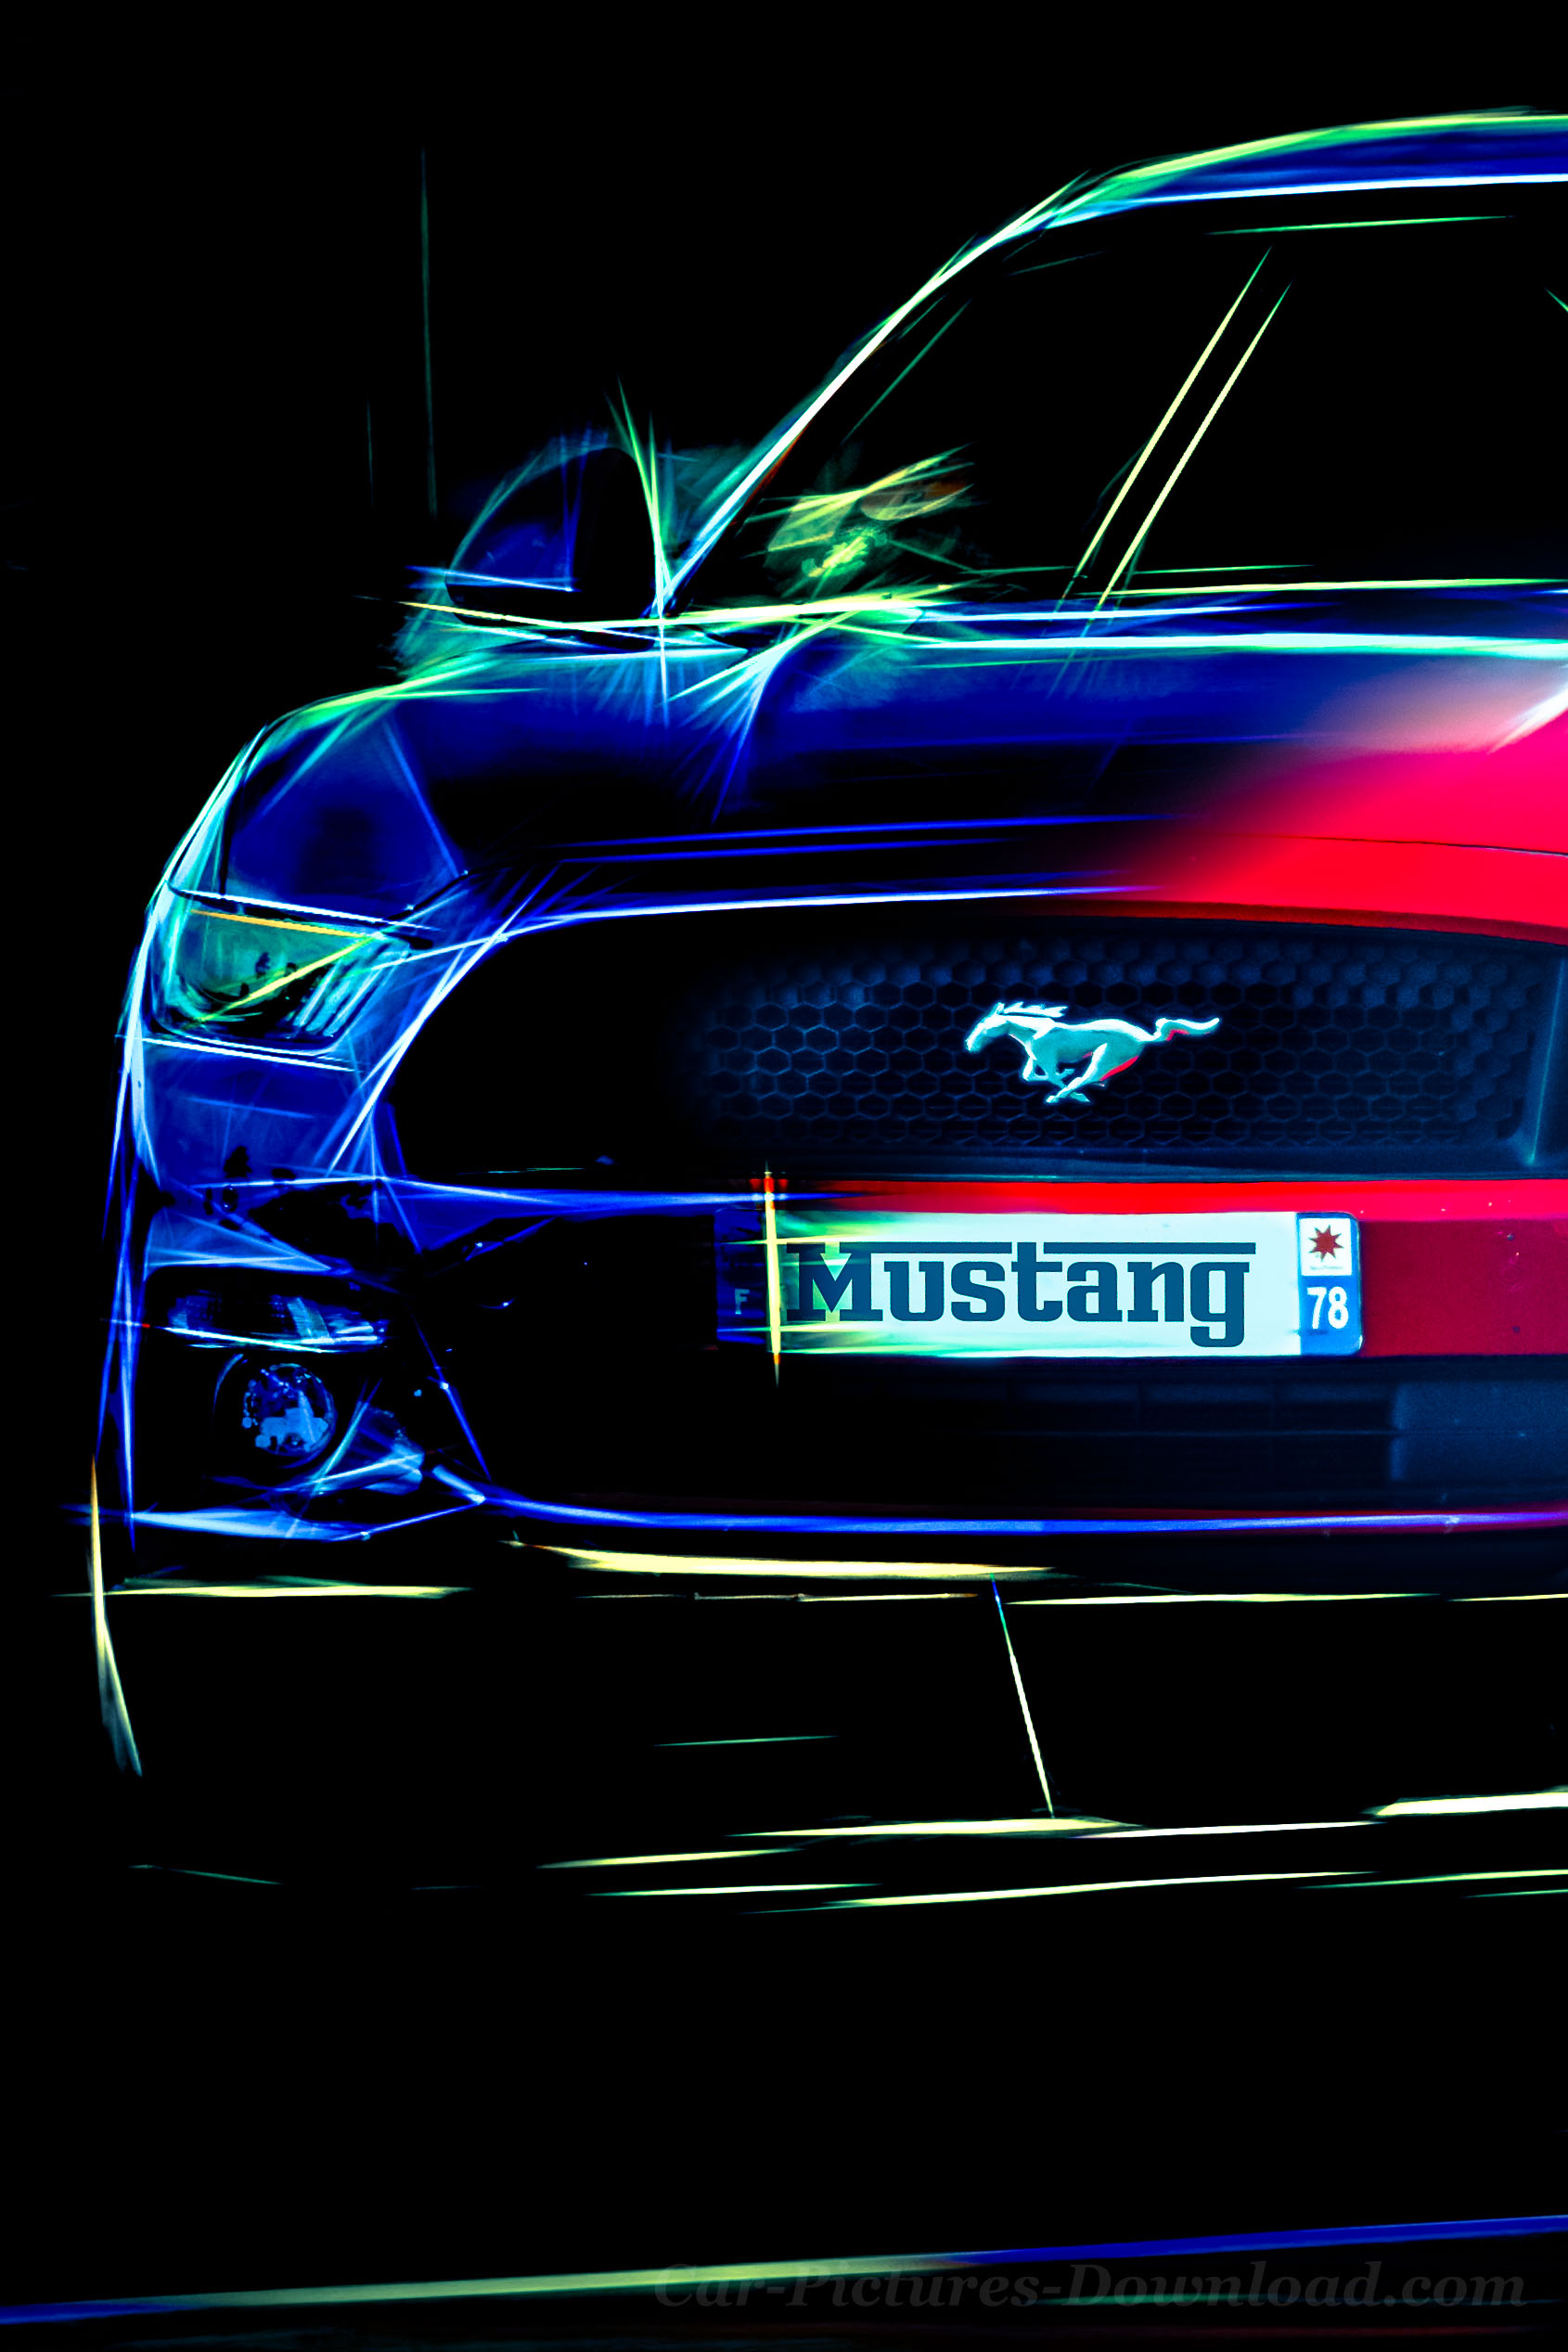 New Ford Mustang Race Car Phone Wallpaper Hd Free Car Mustang Cool Backgrounds 1690x2535 Wallpaper Teahub Io